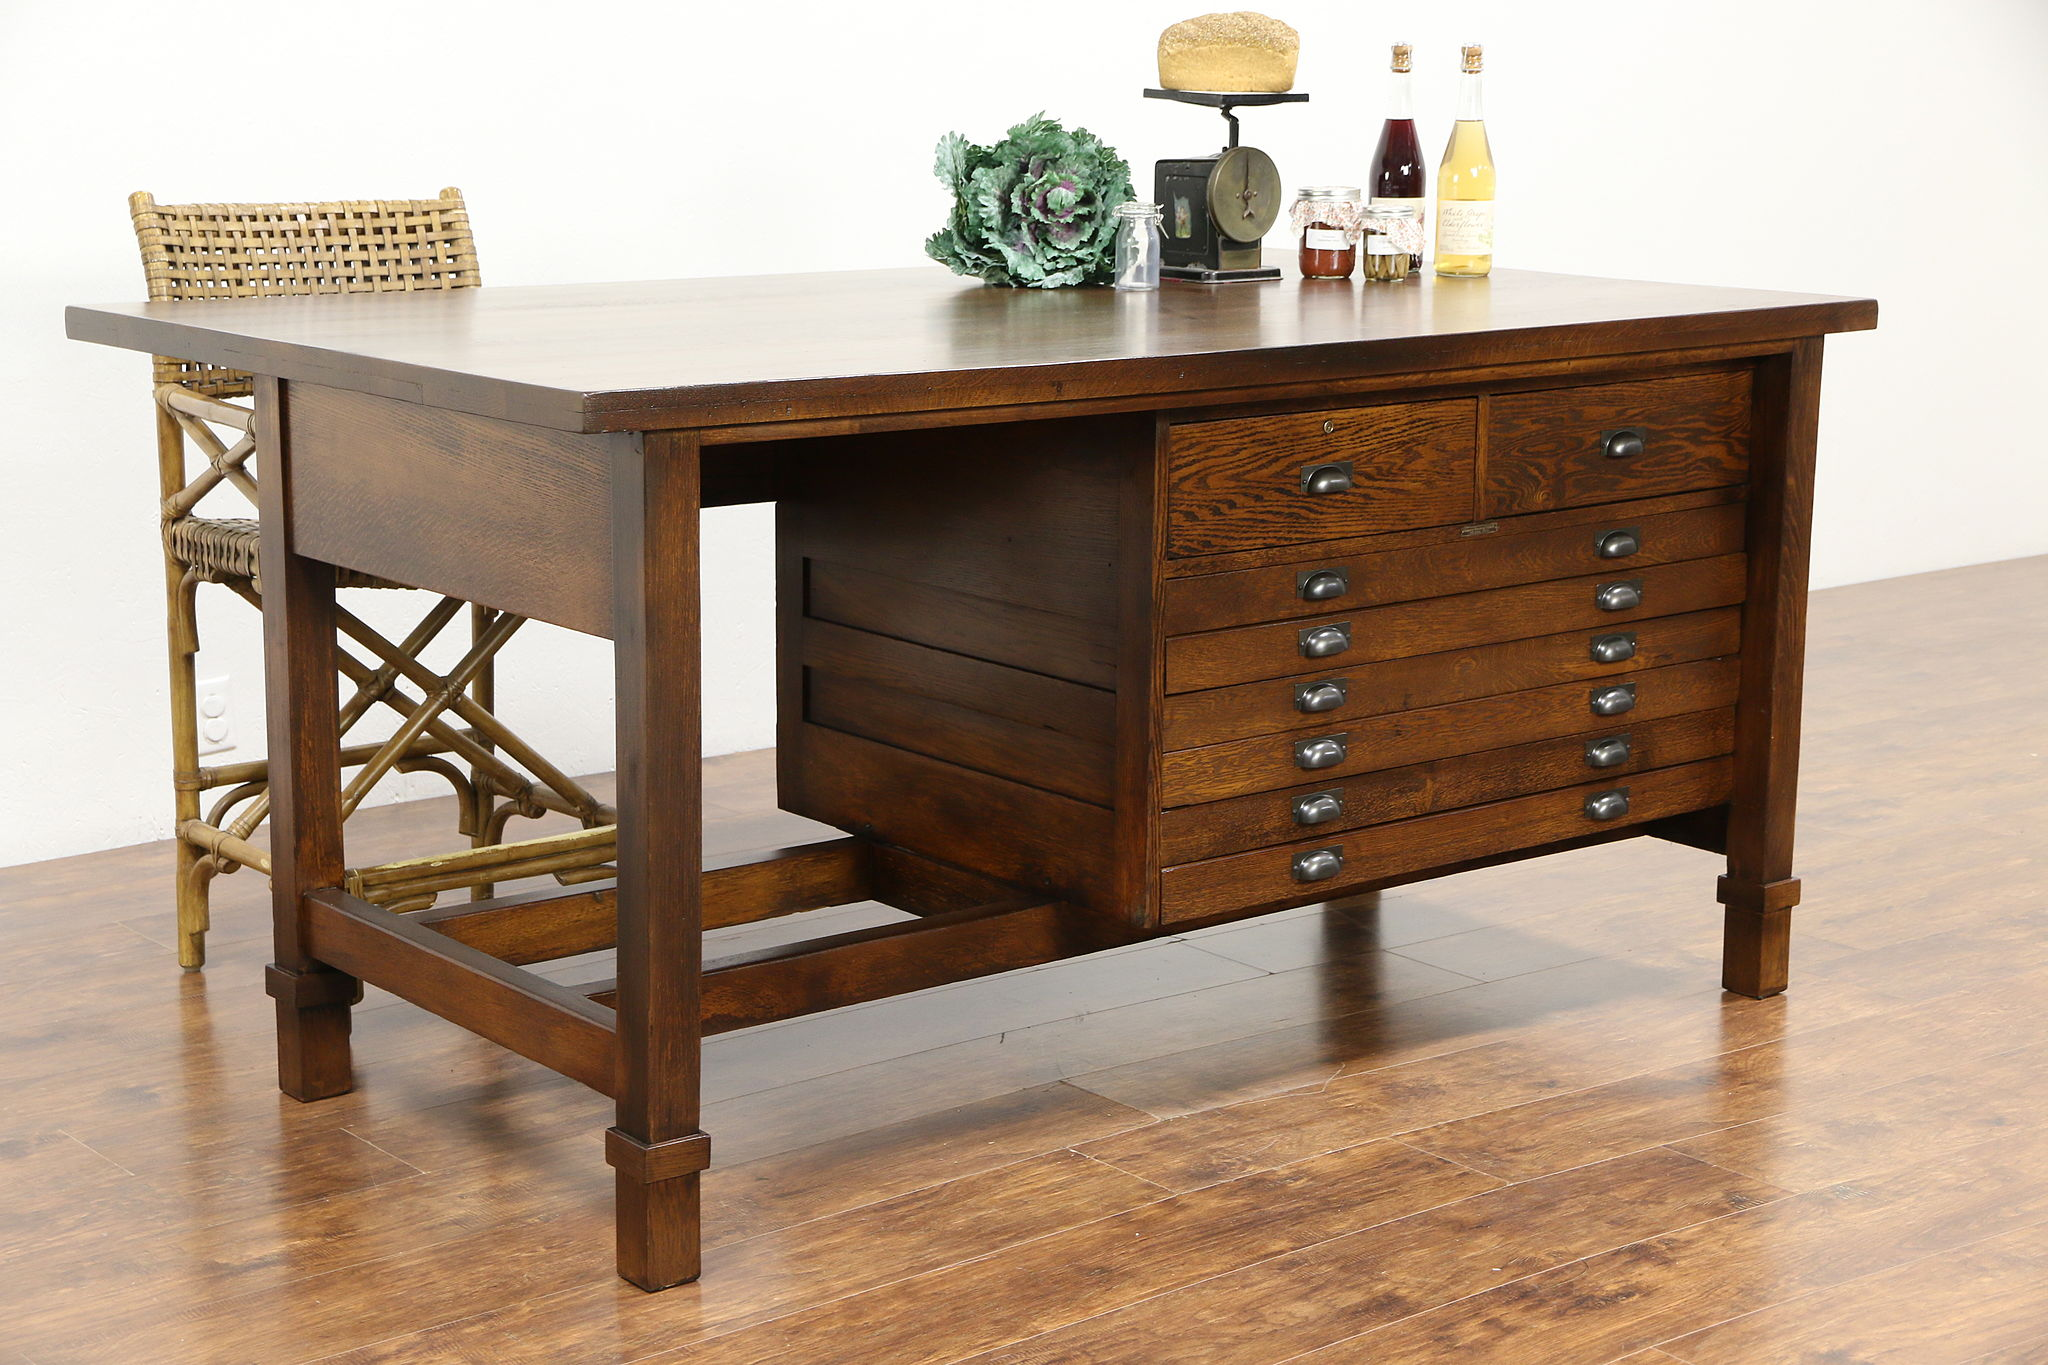 Sold Oak 1920 Antique Architect Drafting Table Kitchen Counter Island Harp Gallery Antiques Furniture